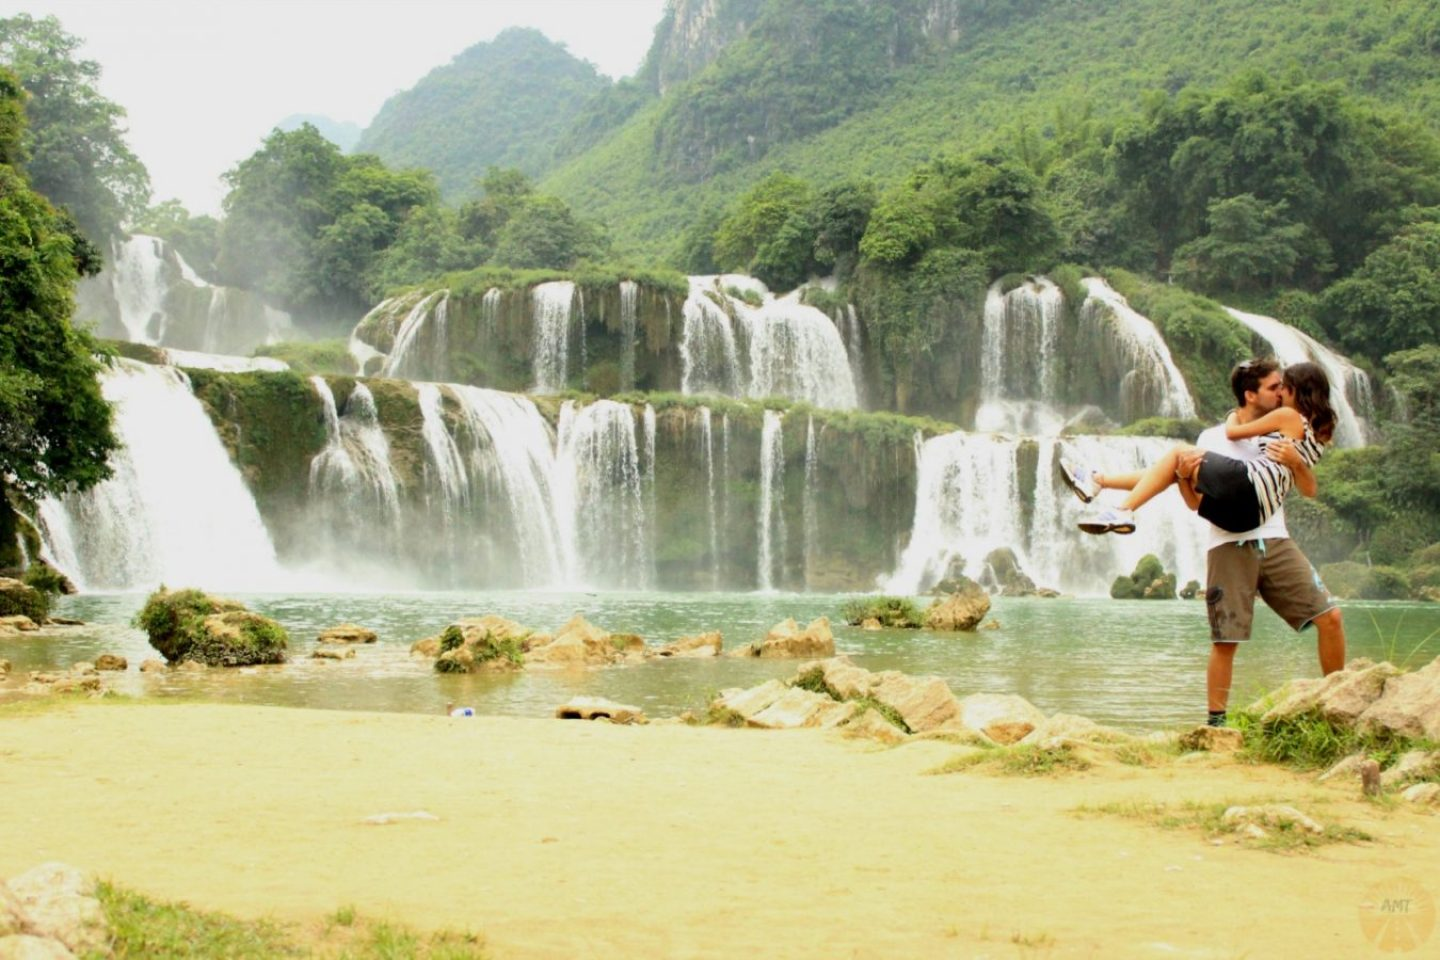 #worldkissproject at Ban Gioc waterfall